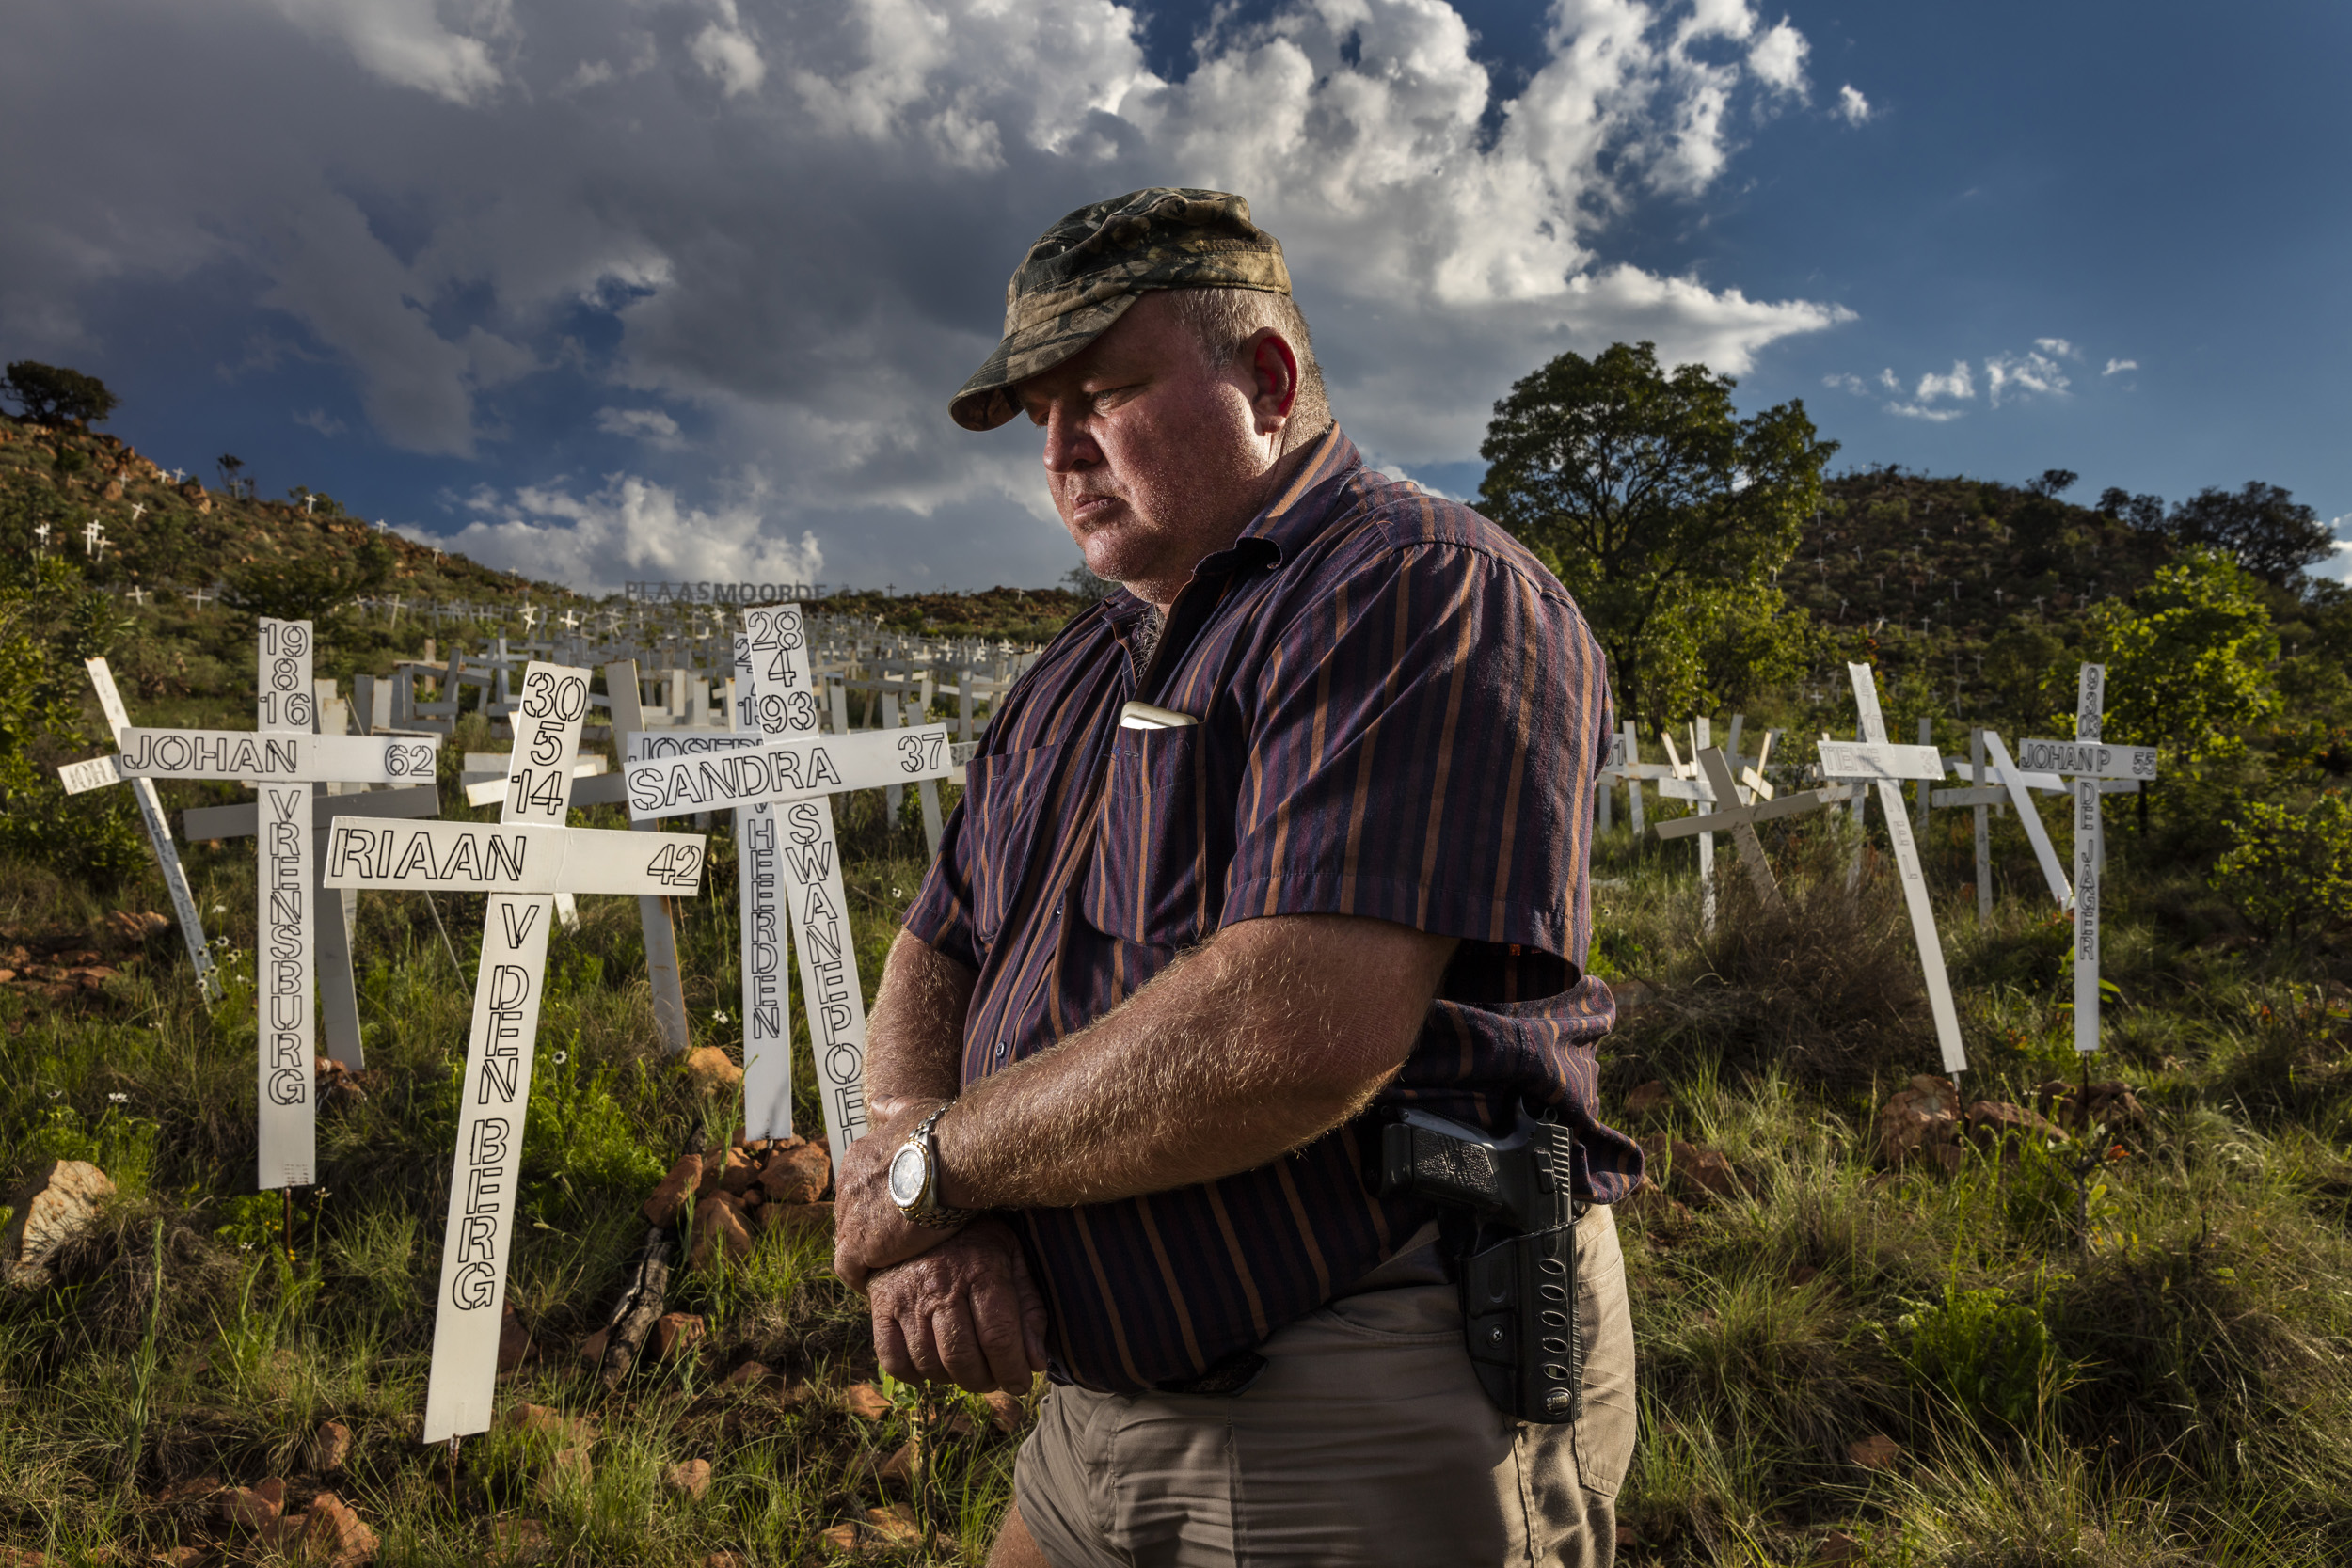 Murders farmers south africa South Africa's